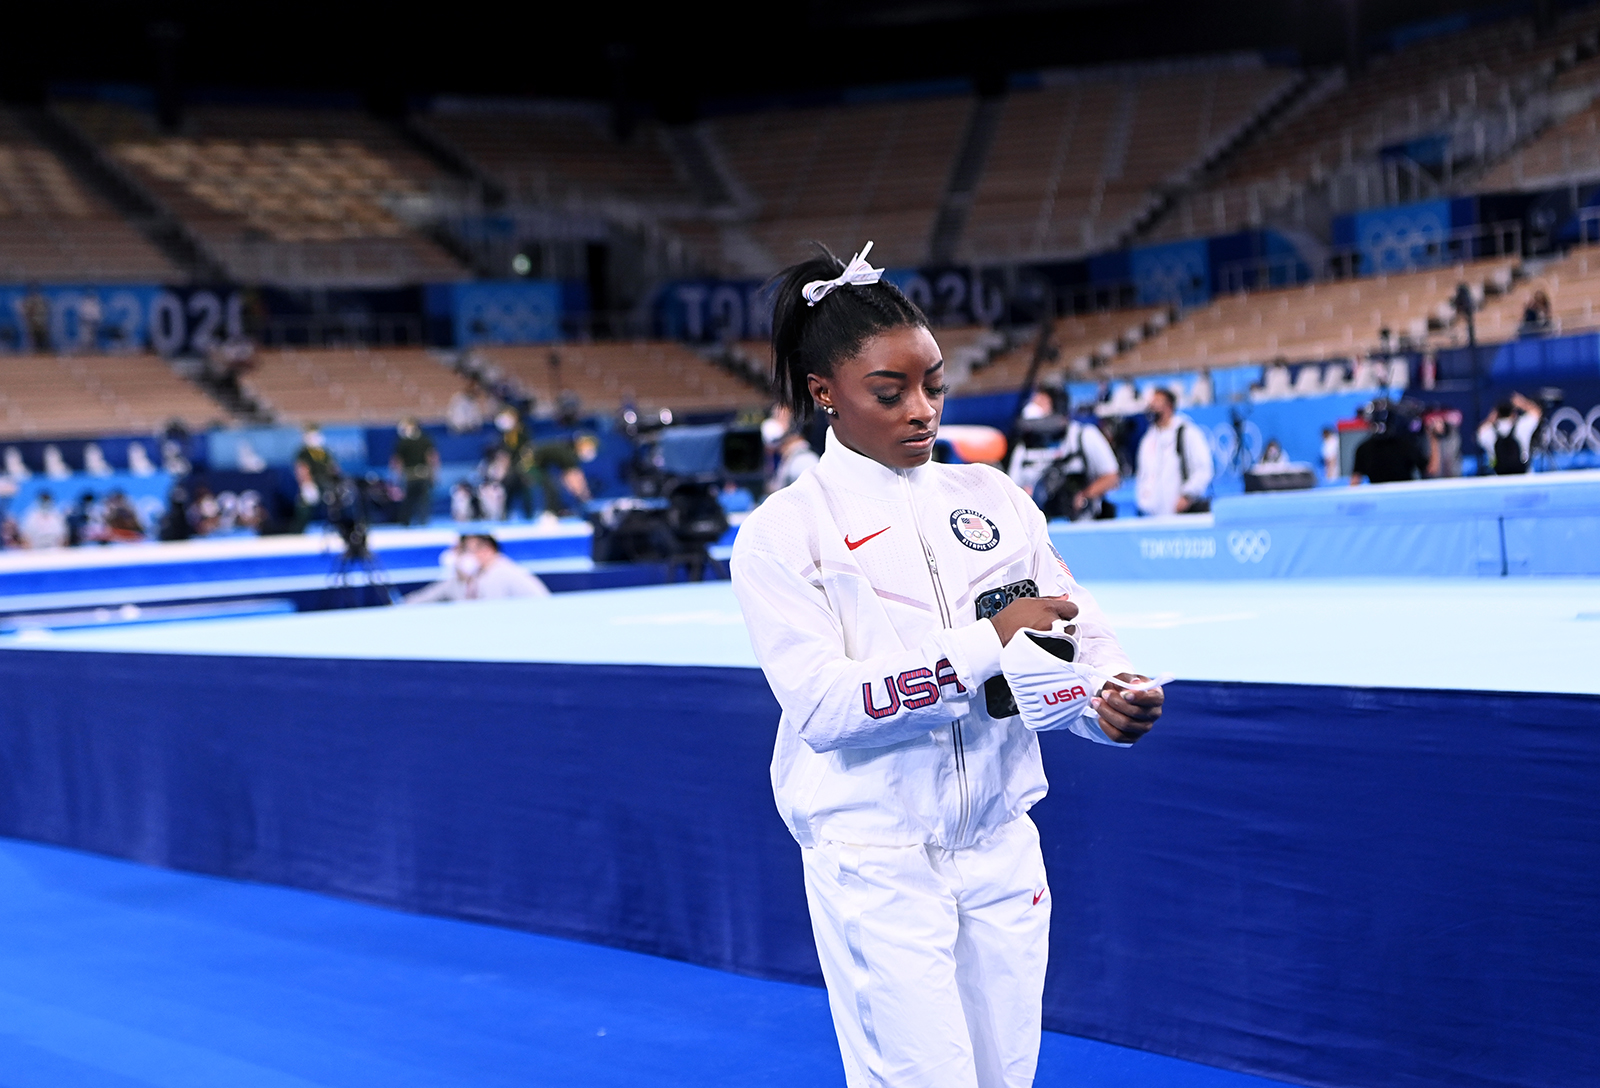 Simone Biles walks alone after the women's team final at the 2020 Tokyo Olympics.